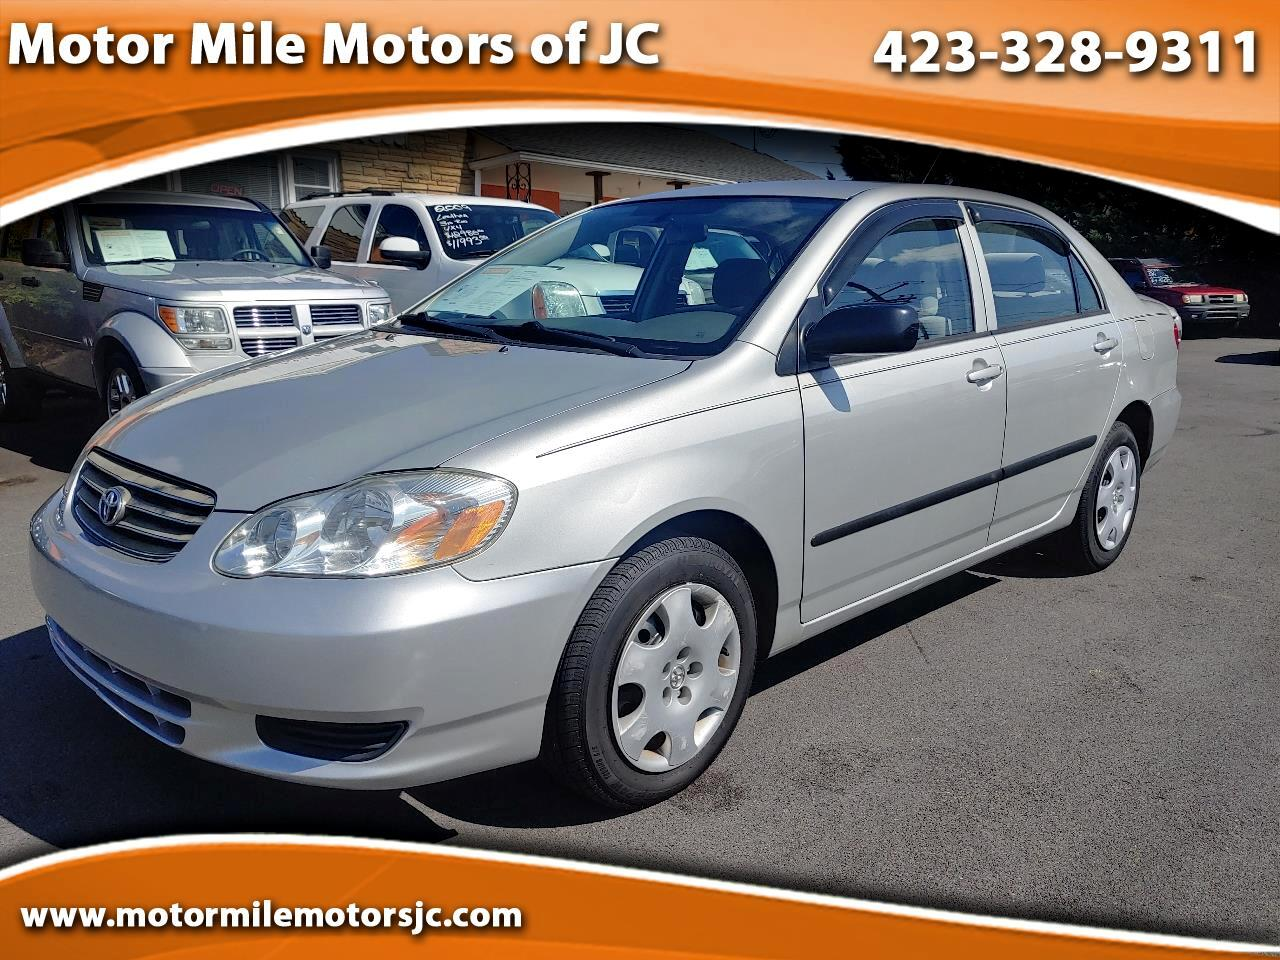 used 2004 toyota corolla 4dr sdn ce manual natl for sale in johnson city tn 37601 motor mile motors motor mile motors